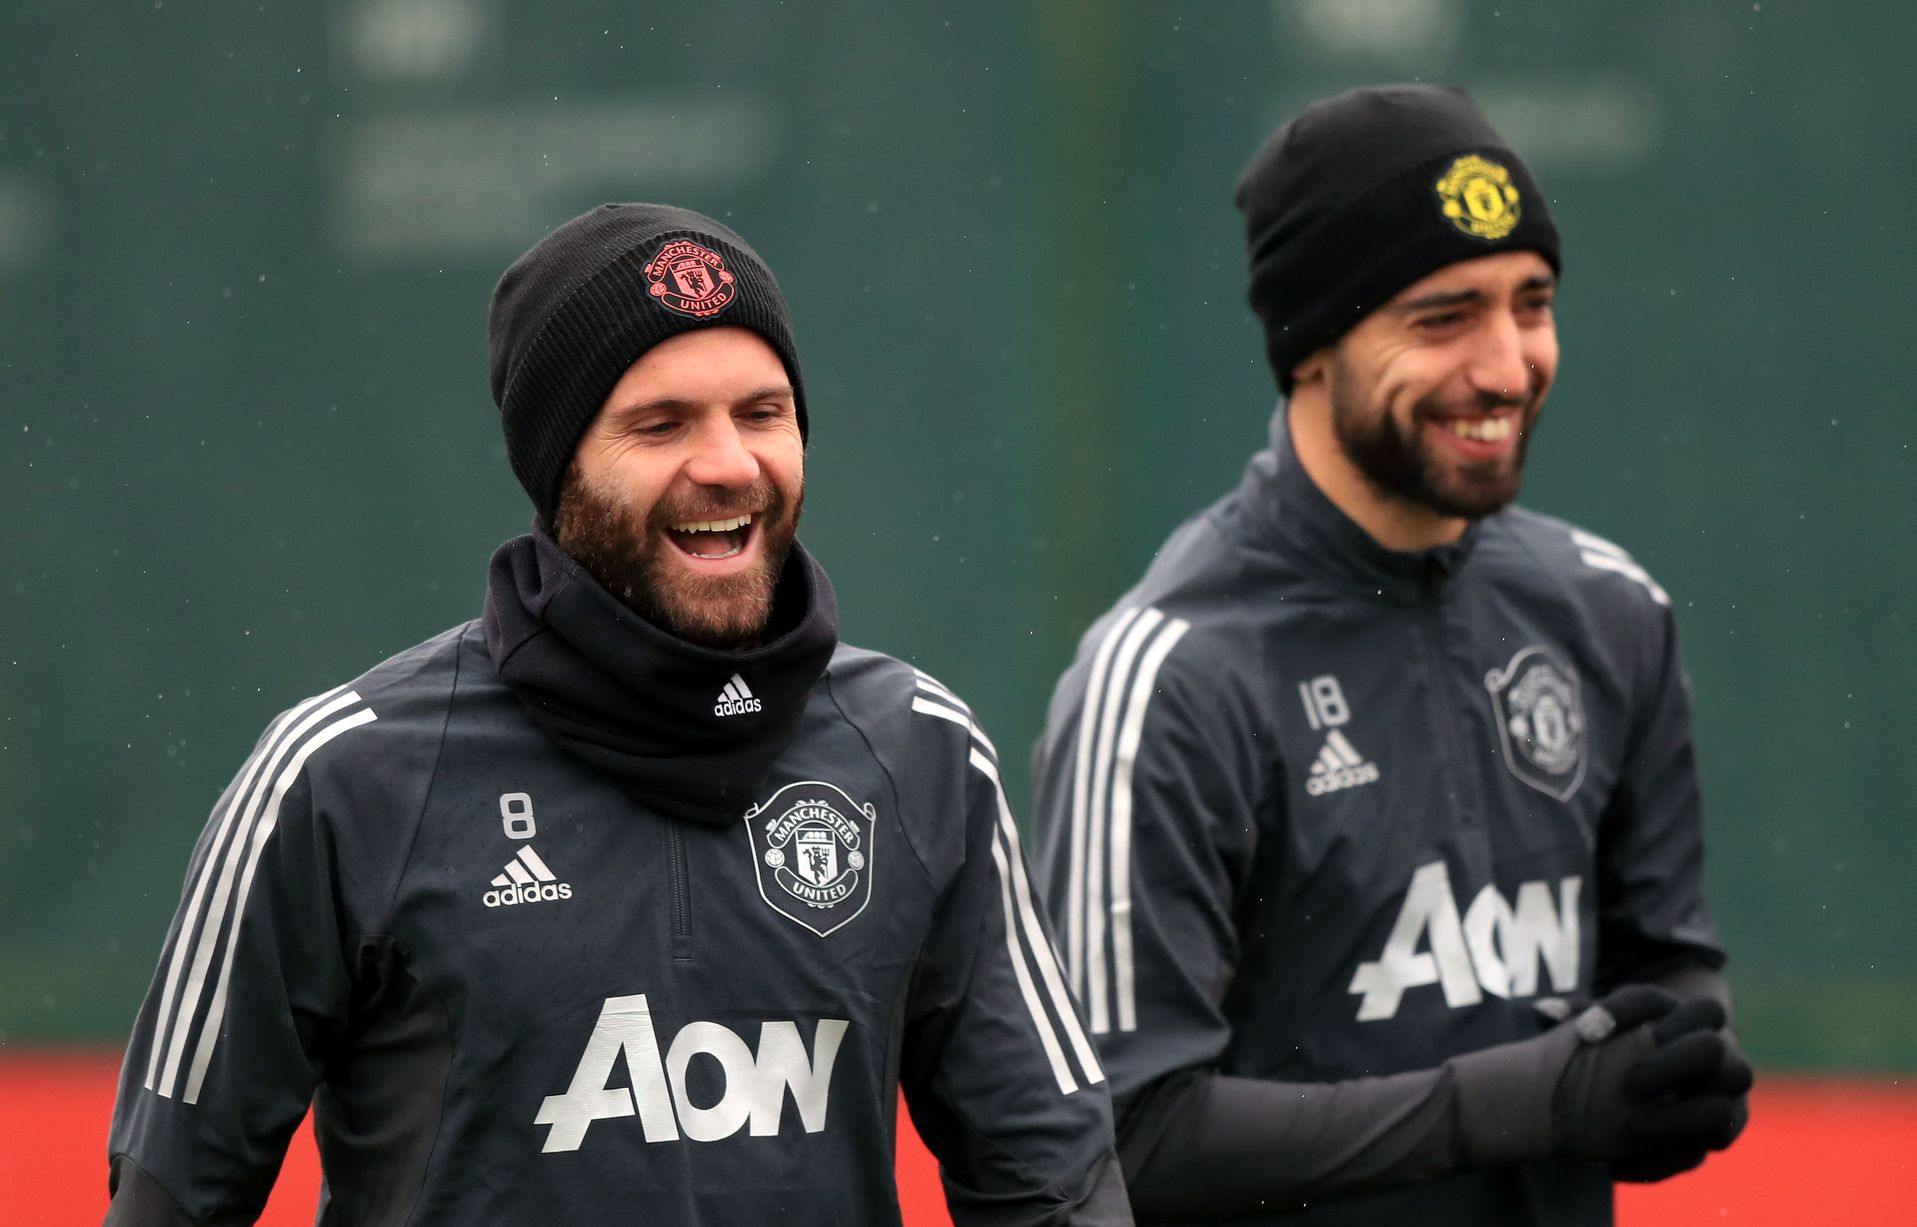 Pictures: Manchester United players train ahead of Club Brugge game - Bóng Đá